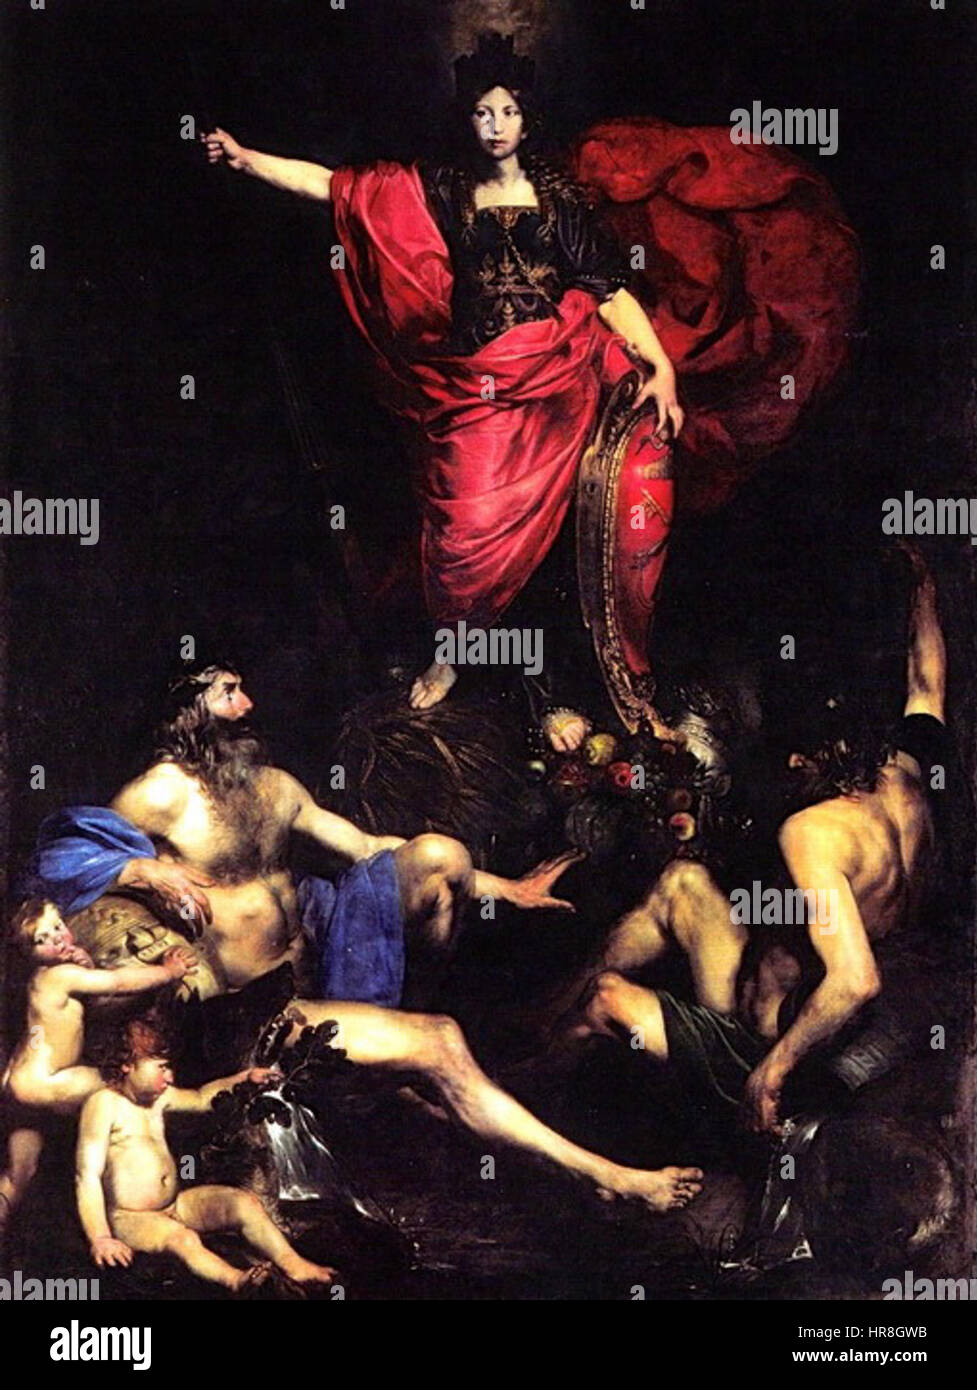 Valentin de Boulogne, Allegory of Italy, c. 1628 - Stock Image